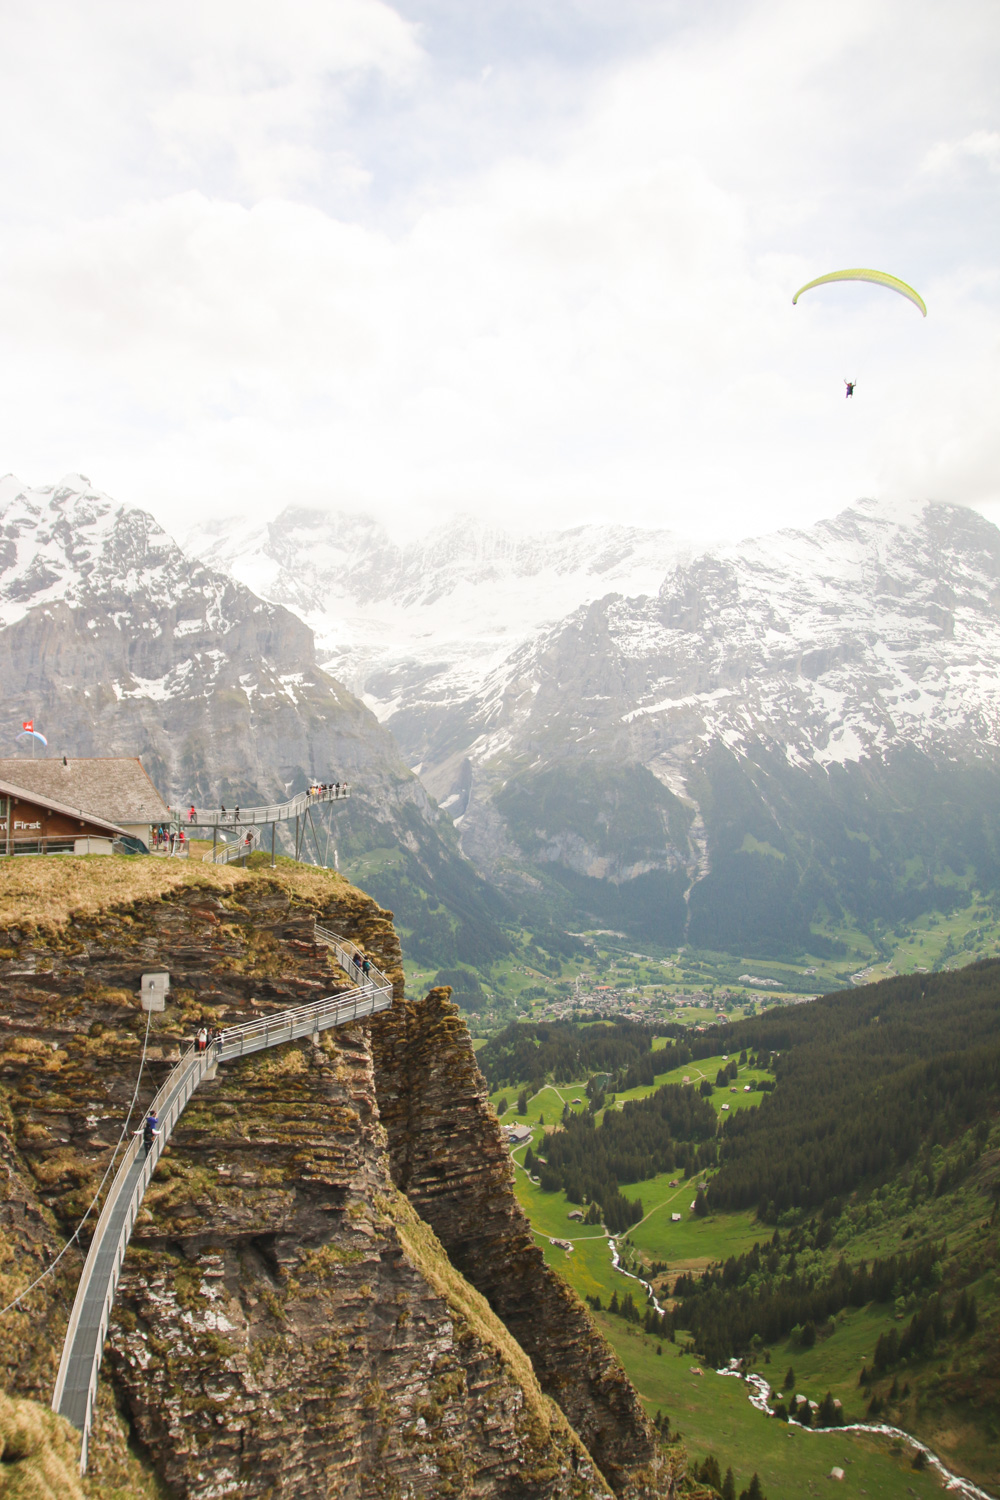 Grindelwald First Cliff Walk, Interlaken